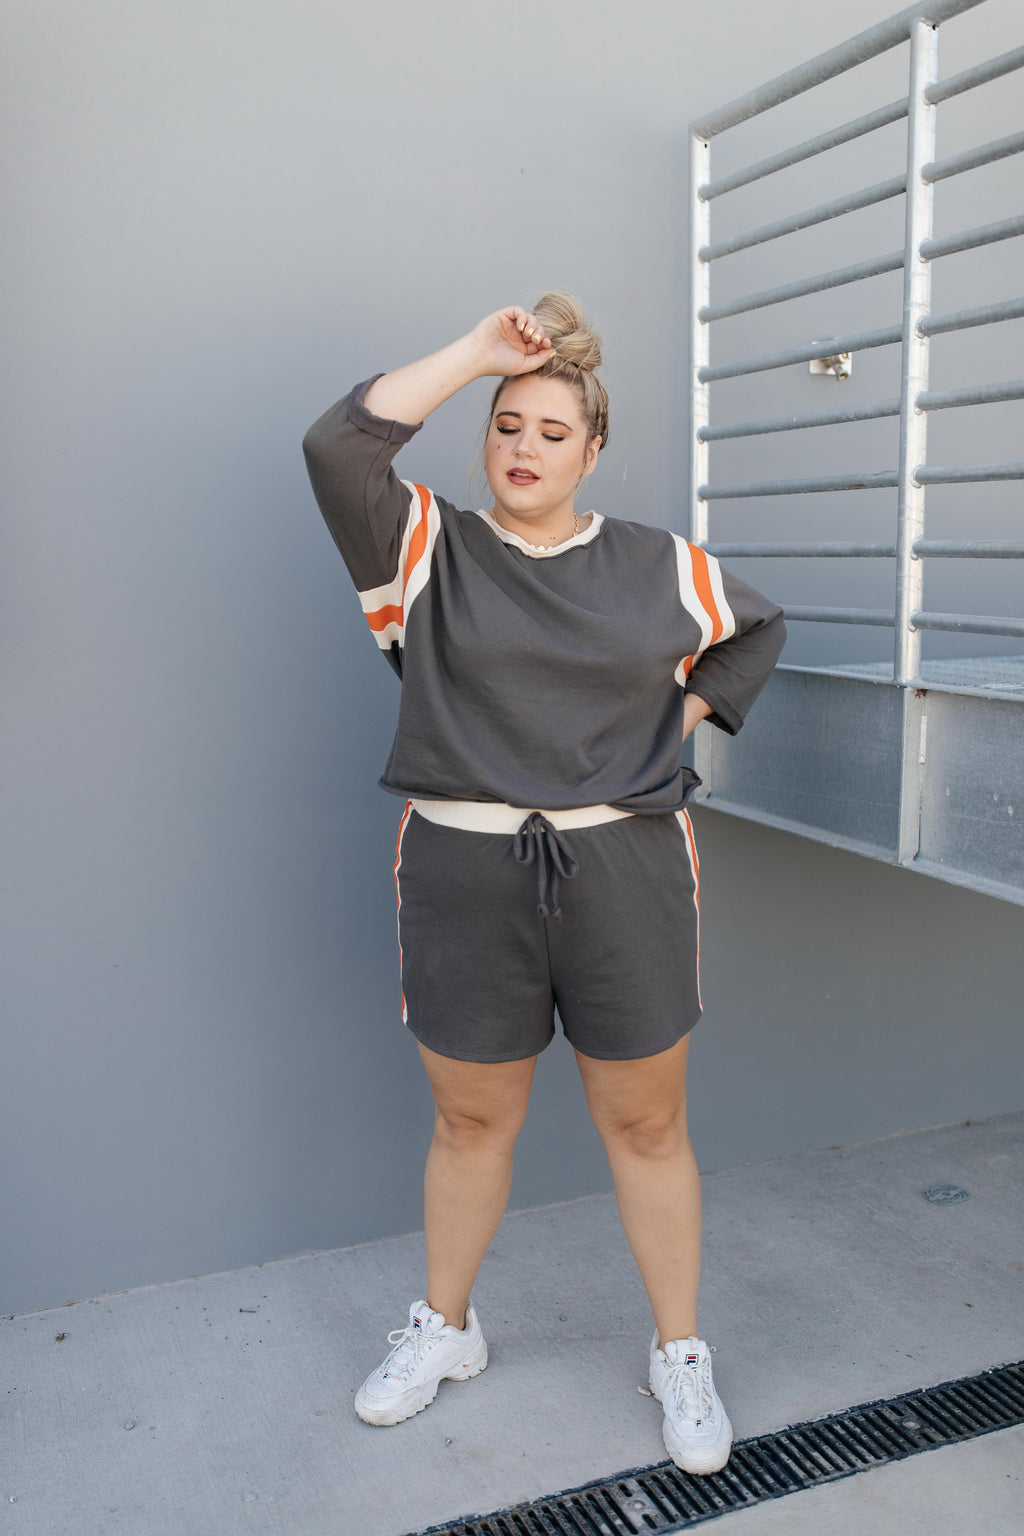 Sporty Stripe Shorts In Charcoal-1XL, 2XL, 3XL, 9-1-2020, BFCM2020, Bottoms, Group A, Group B, Group C, Group D, Group T, Large, Made in the USA, Medium, Plus, Small, Warehouse Sale-Womens Artisan USA American Made Clothing Accessories